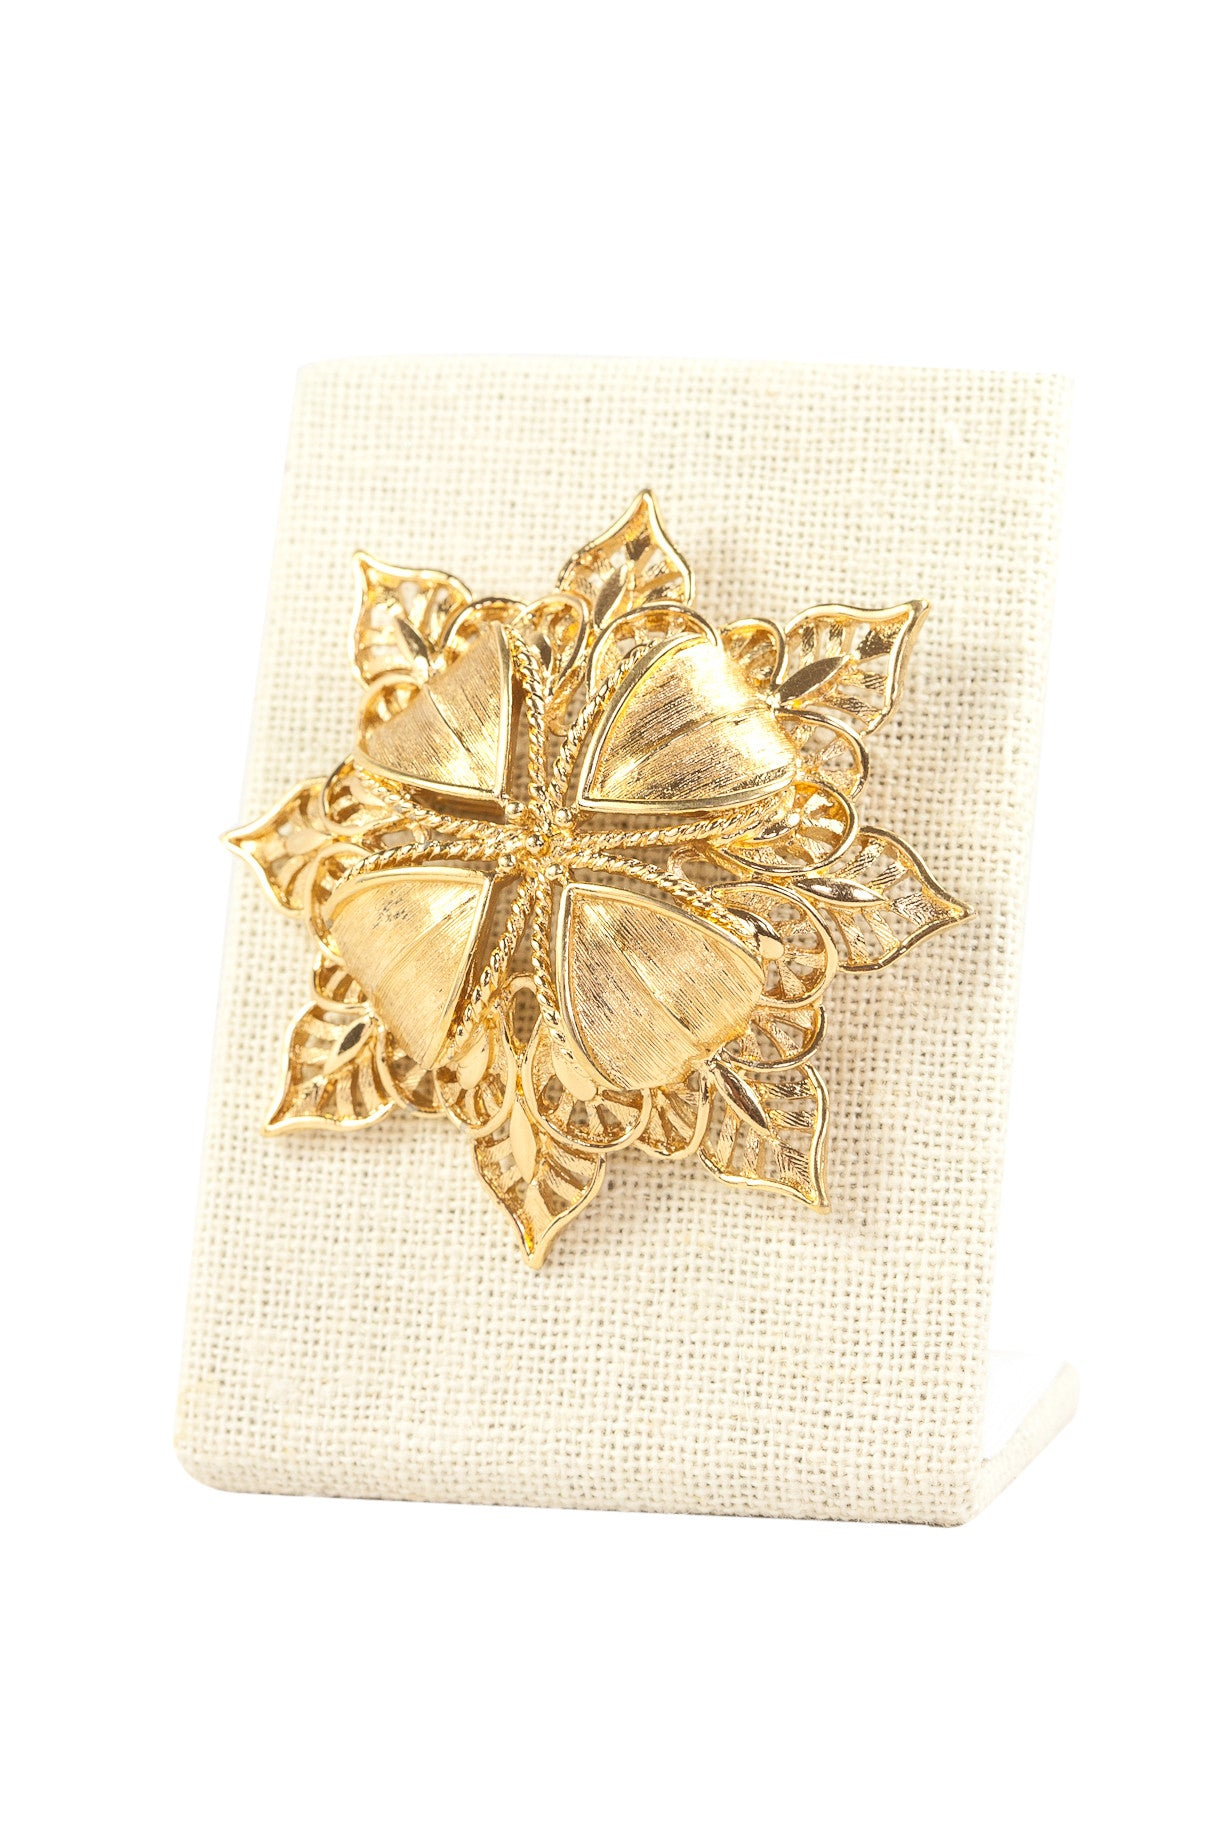 70's__Monet__Snowflake Burst Brooch